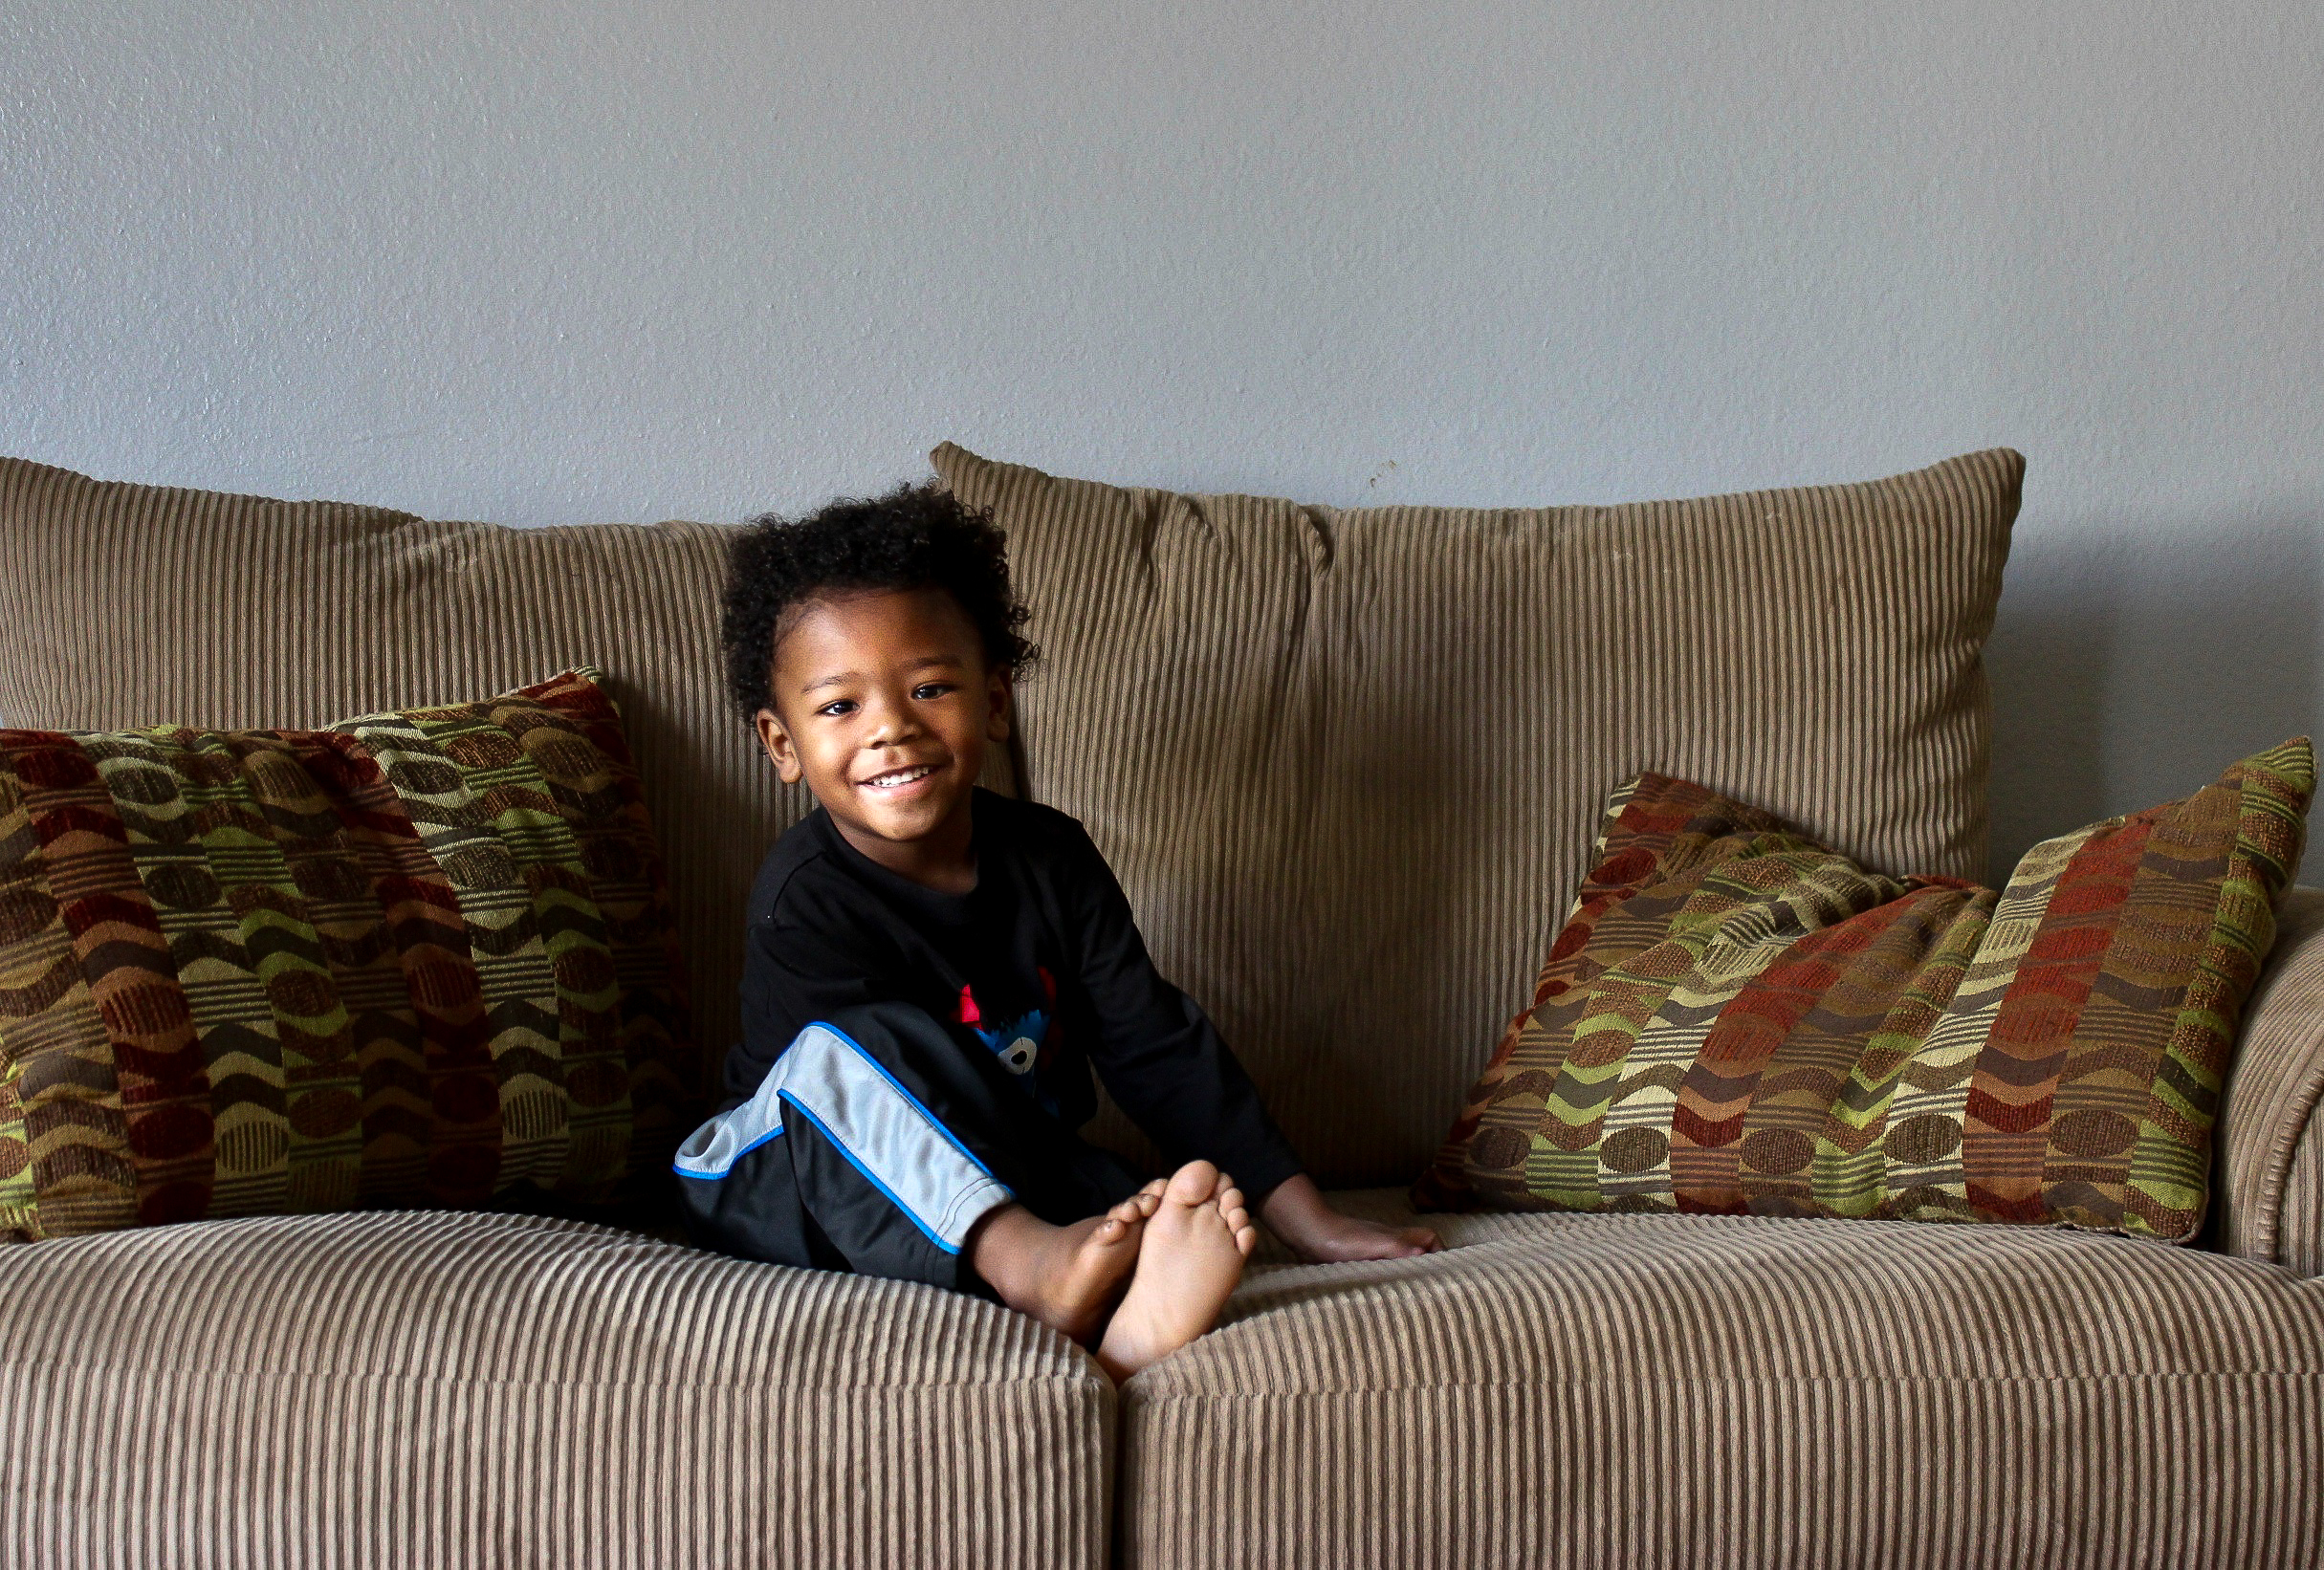 small boy sitting on couch